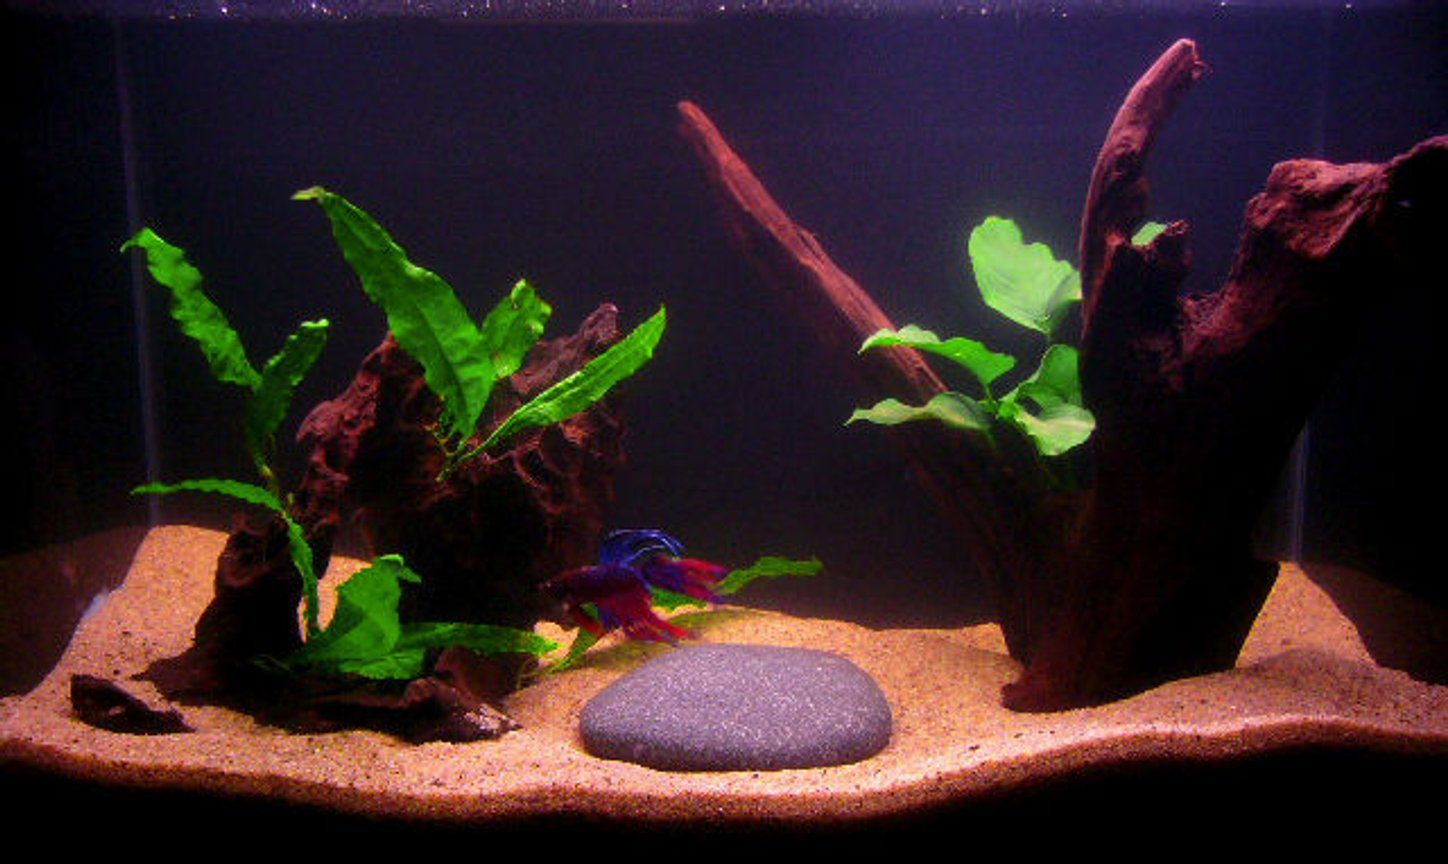 10 gallons planted tank (mostly live plants and fish) - 10 Gallon, 1 male Crowntail Betta, 1 Anubias Nana, 1 Java Fern